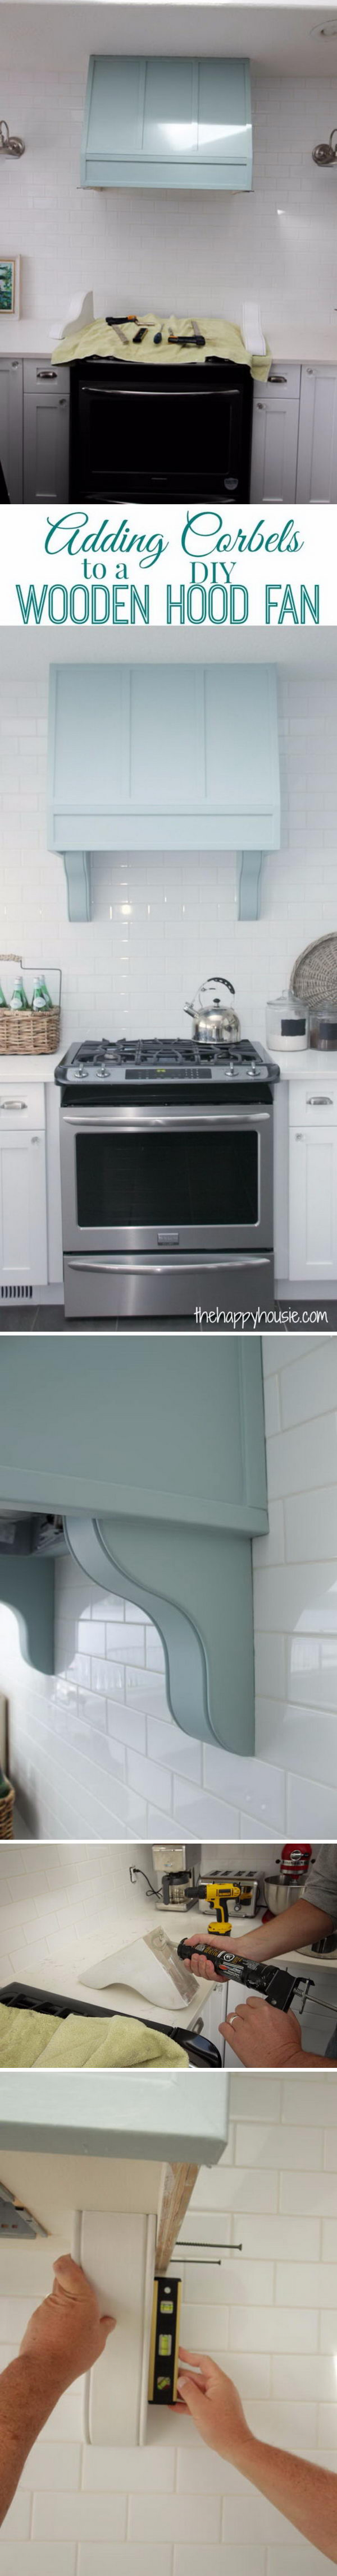 Add Corbels to a DIY Wooden Hood Fan.